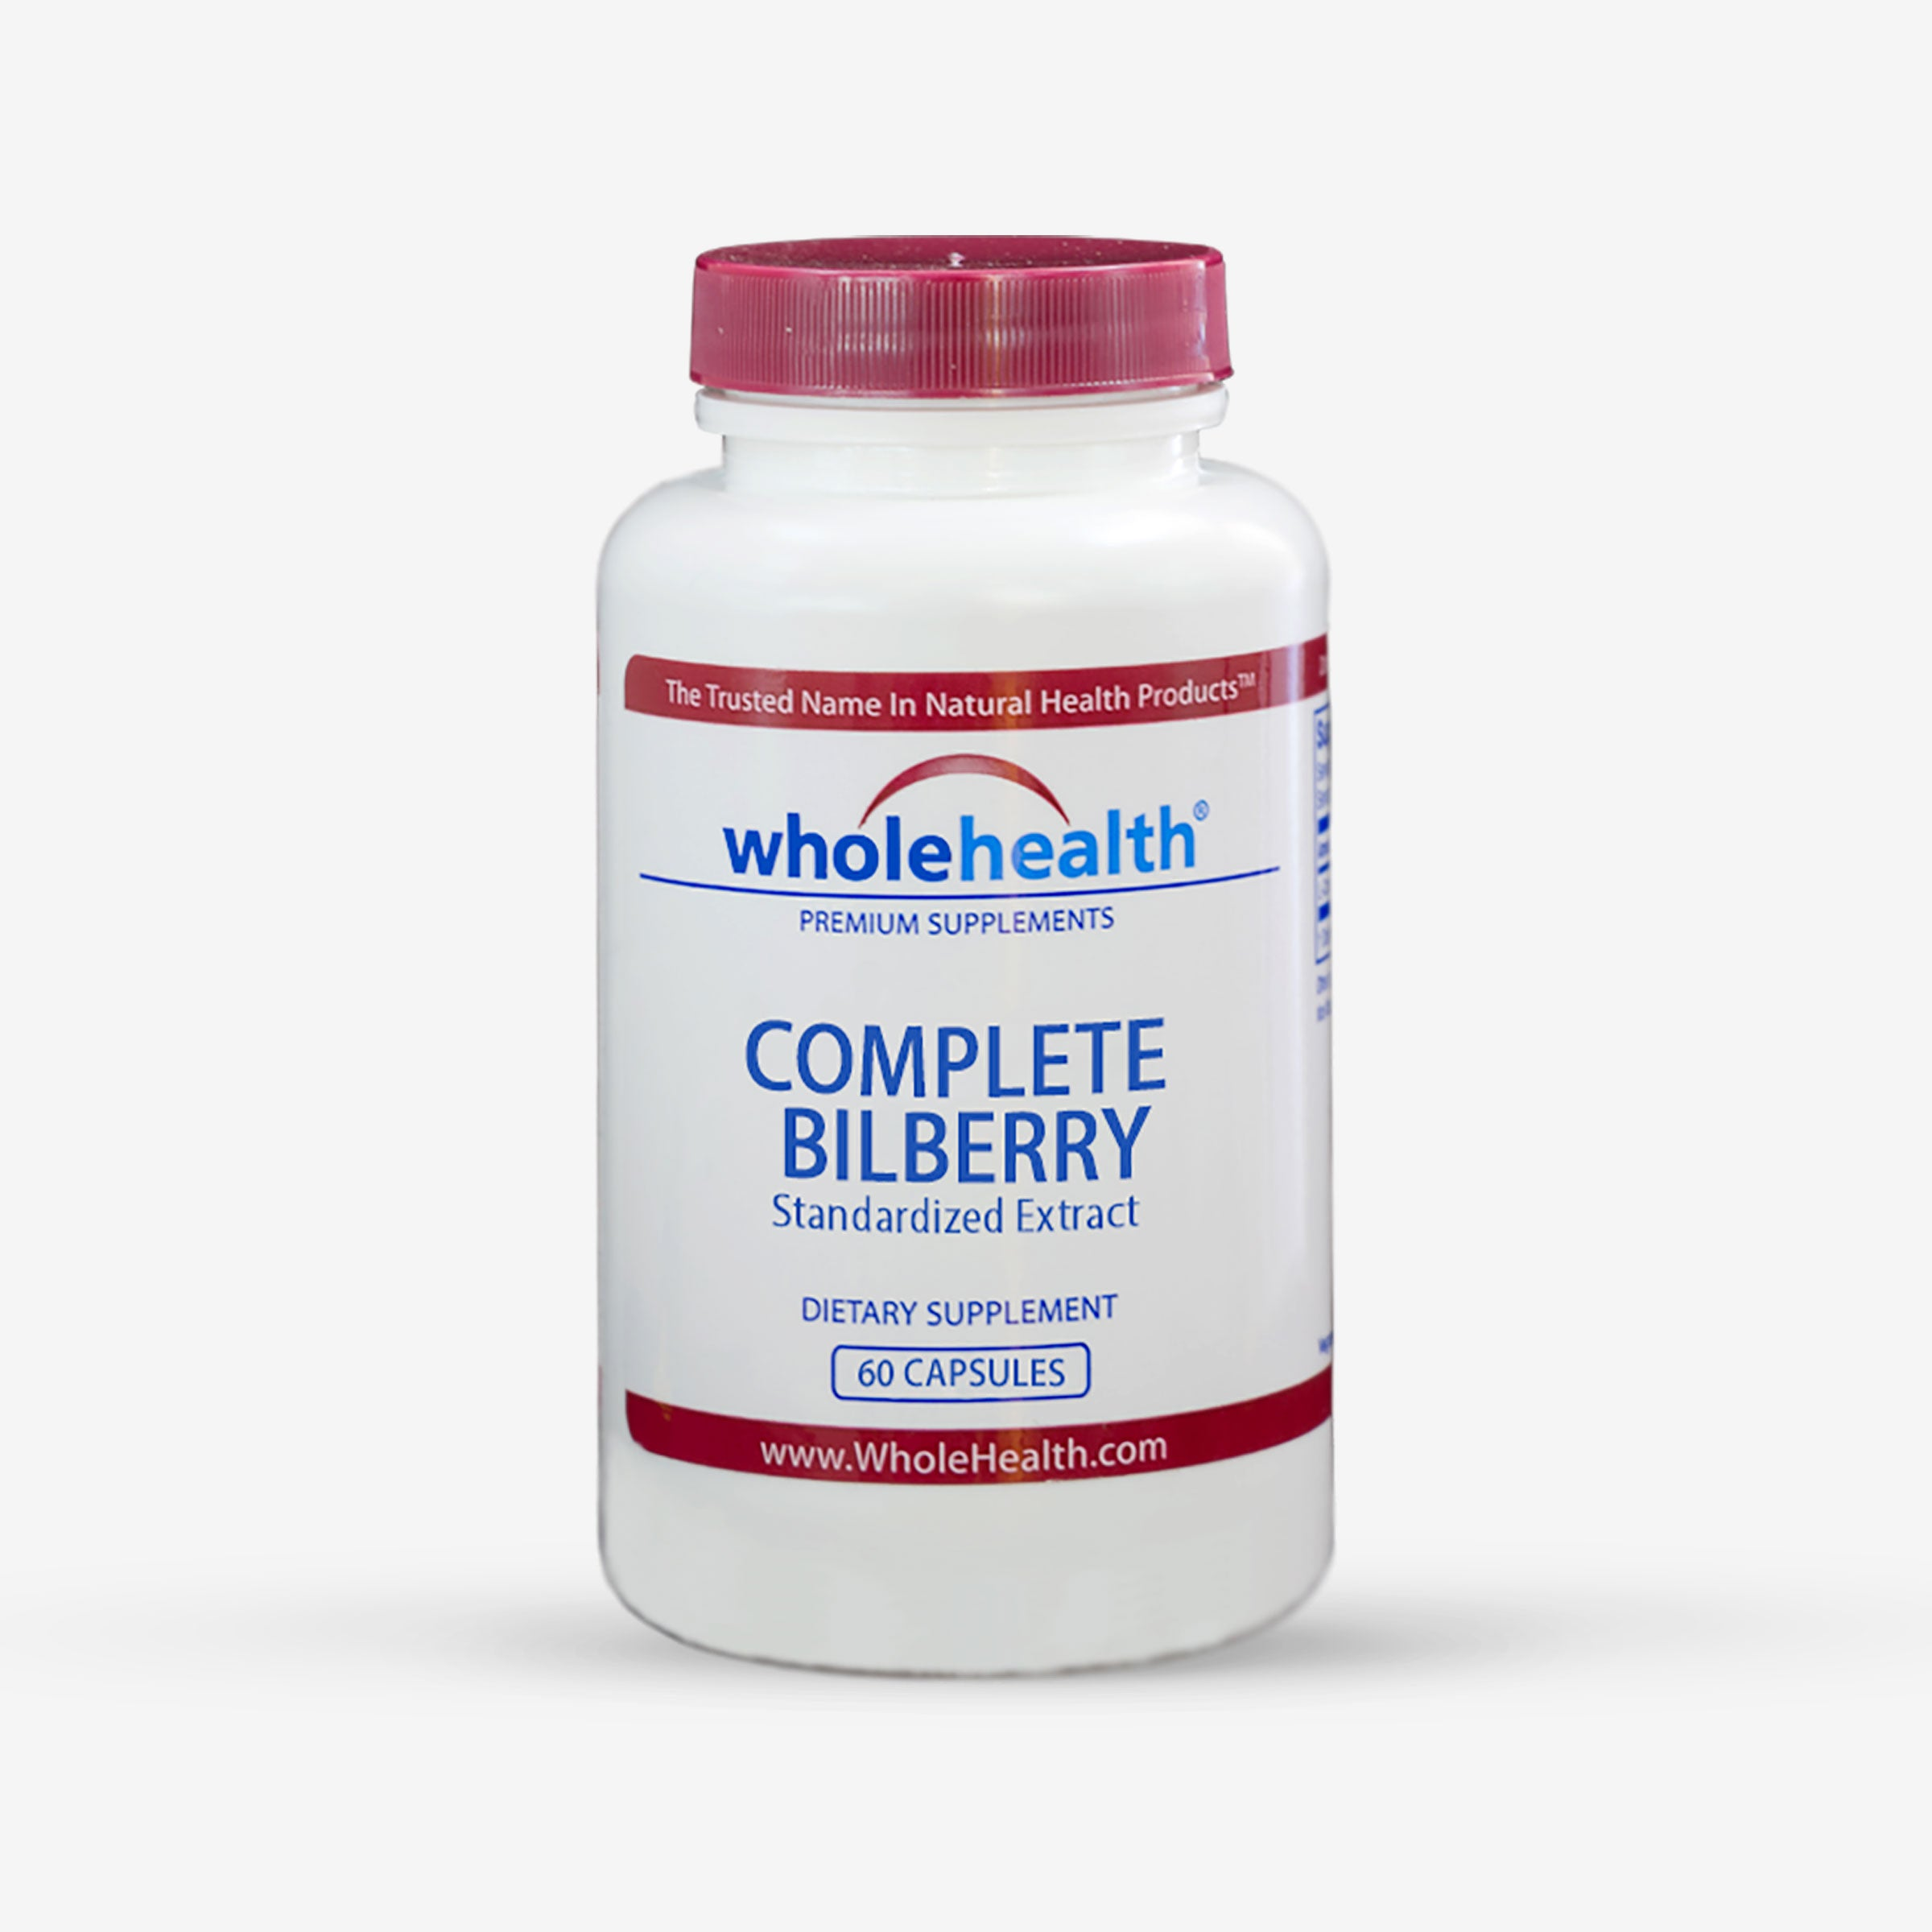 Complete Bilberry Extract (60 Capsules)